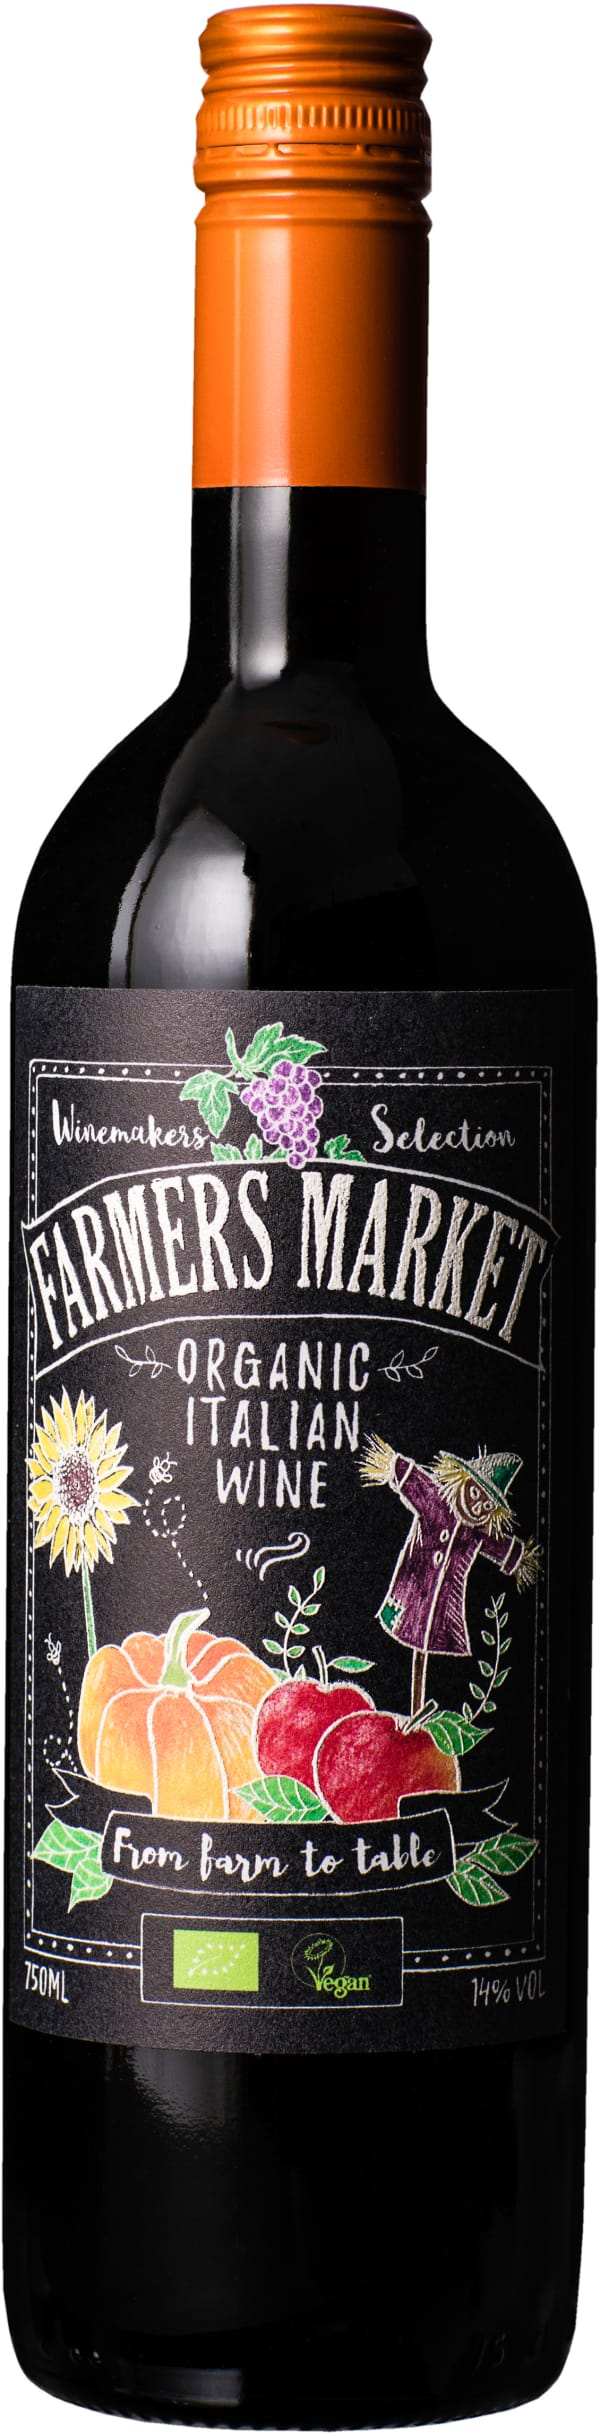 Farmers Market Organic Red